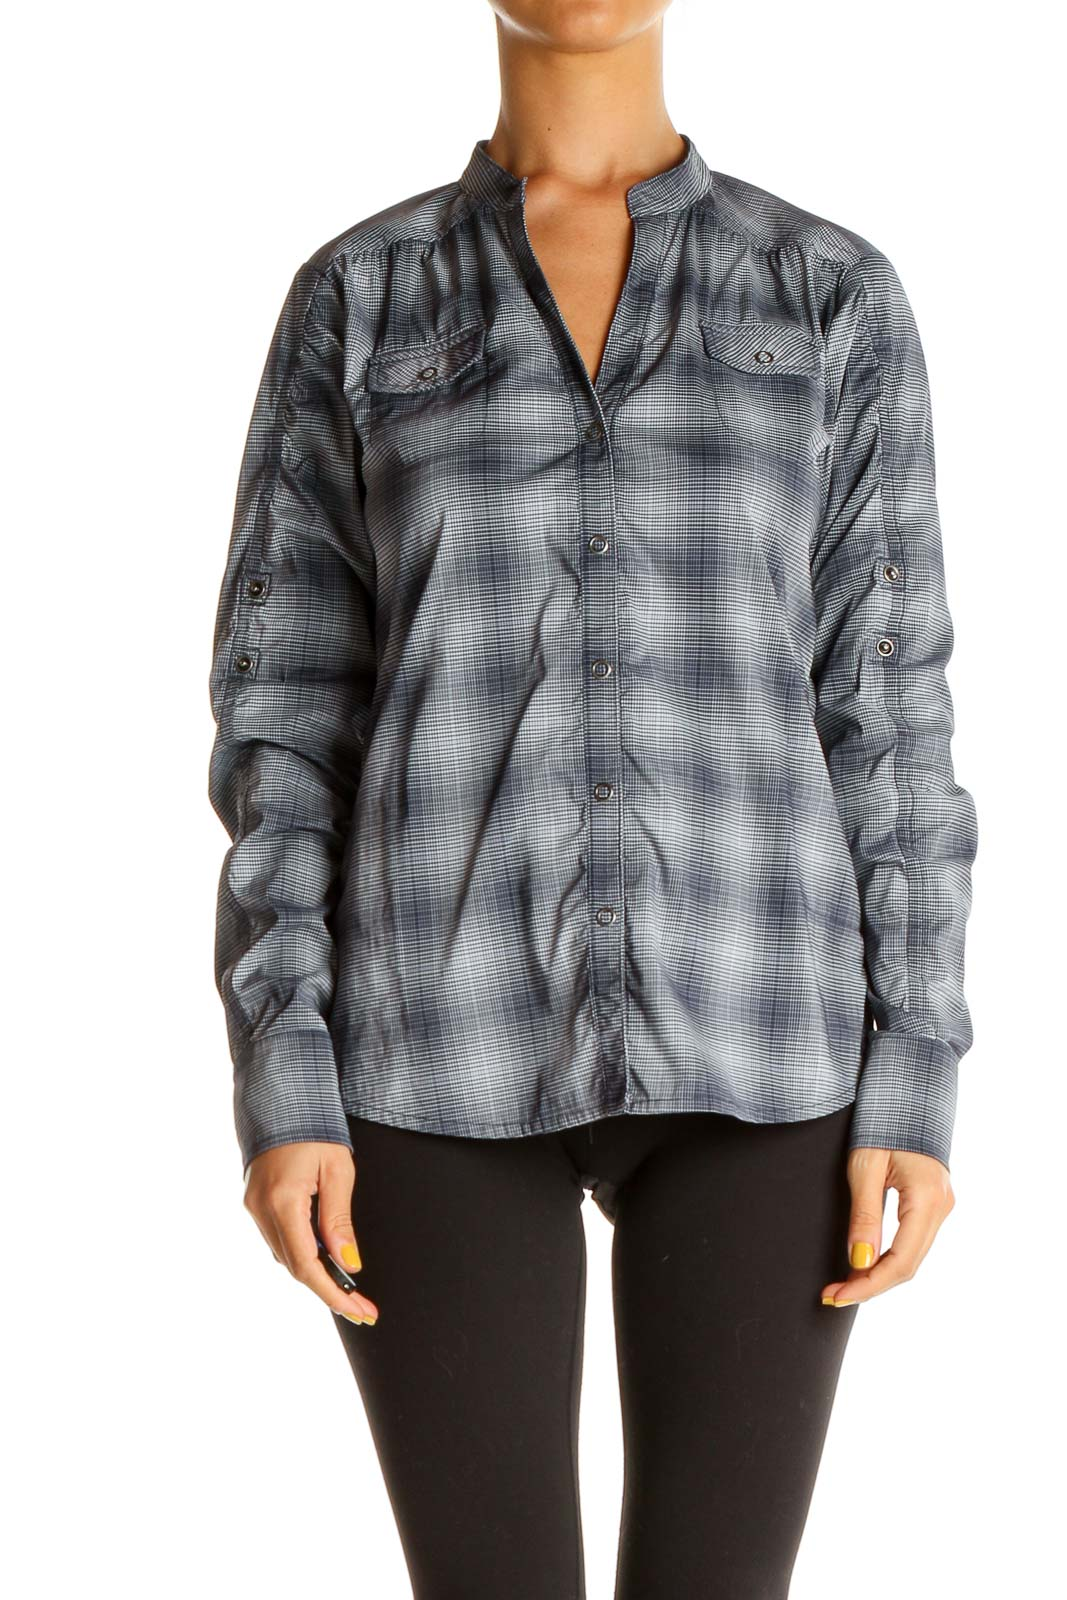 Gray Plaid All Day Wear Shirt Front